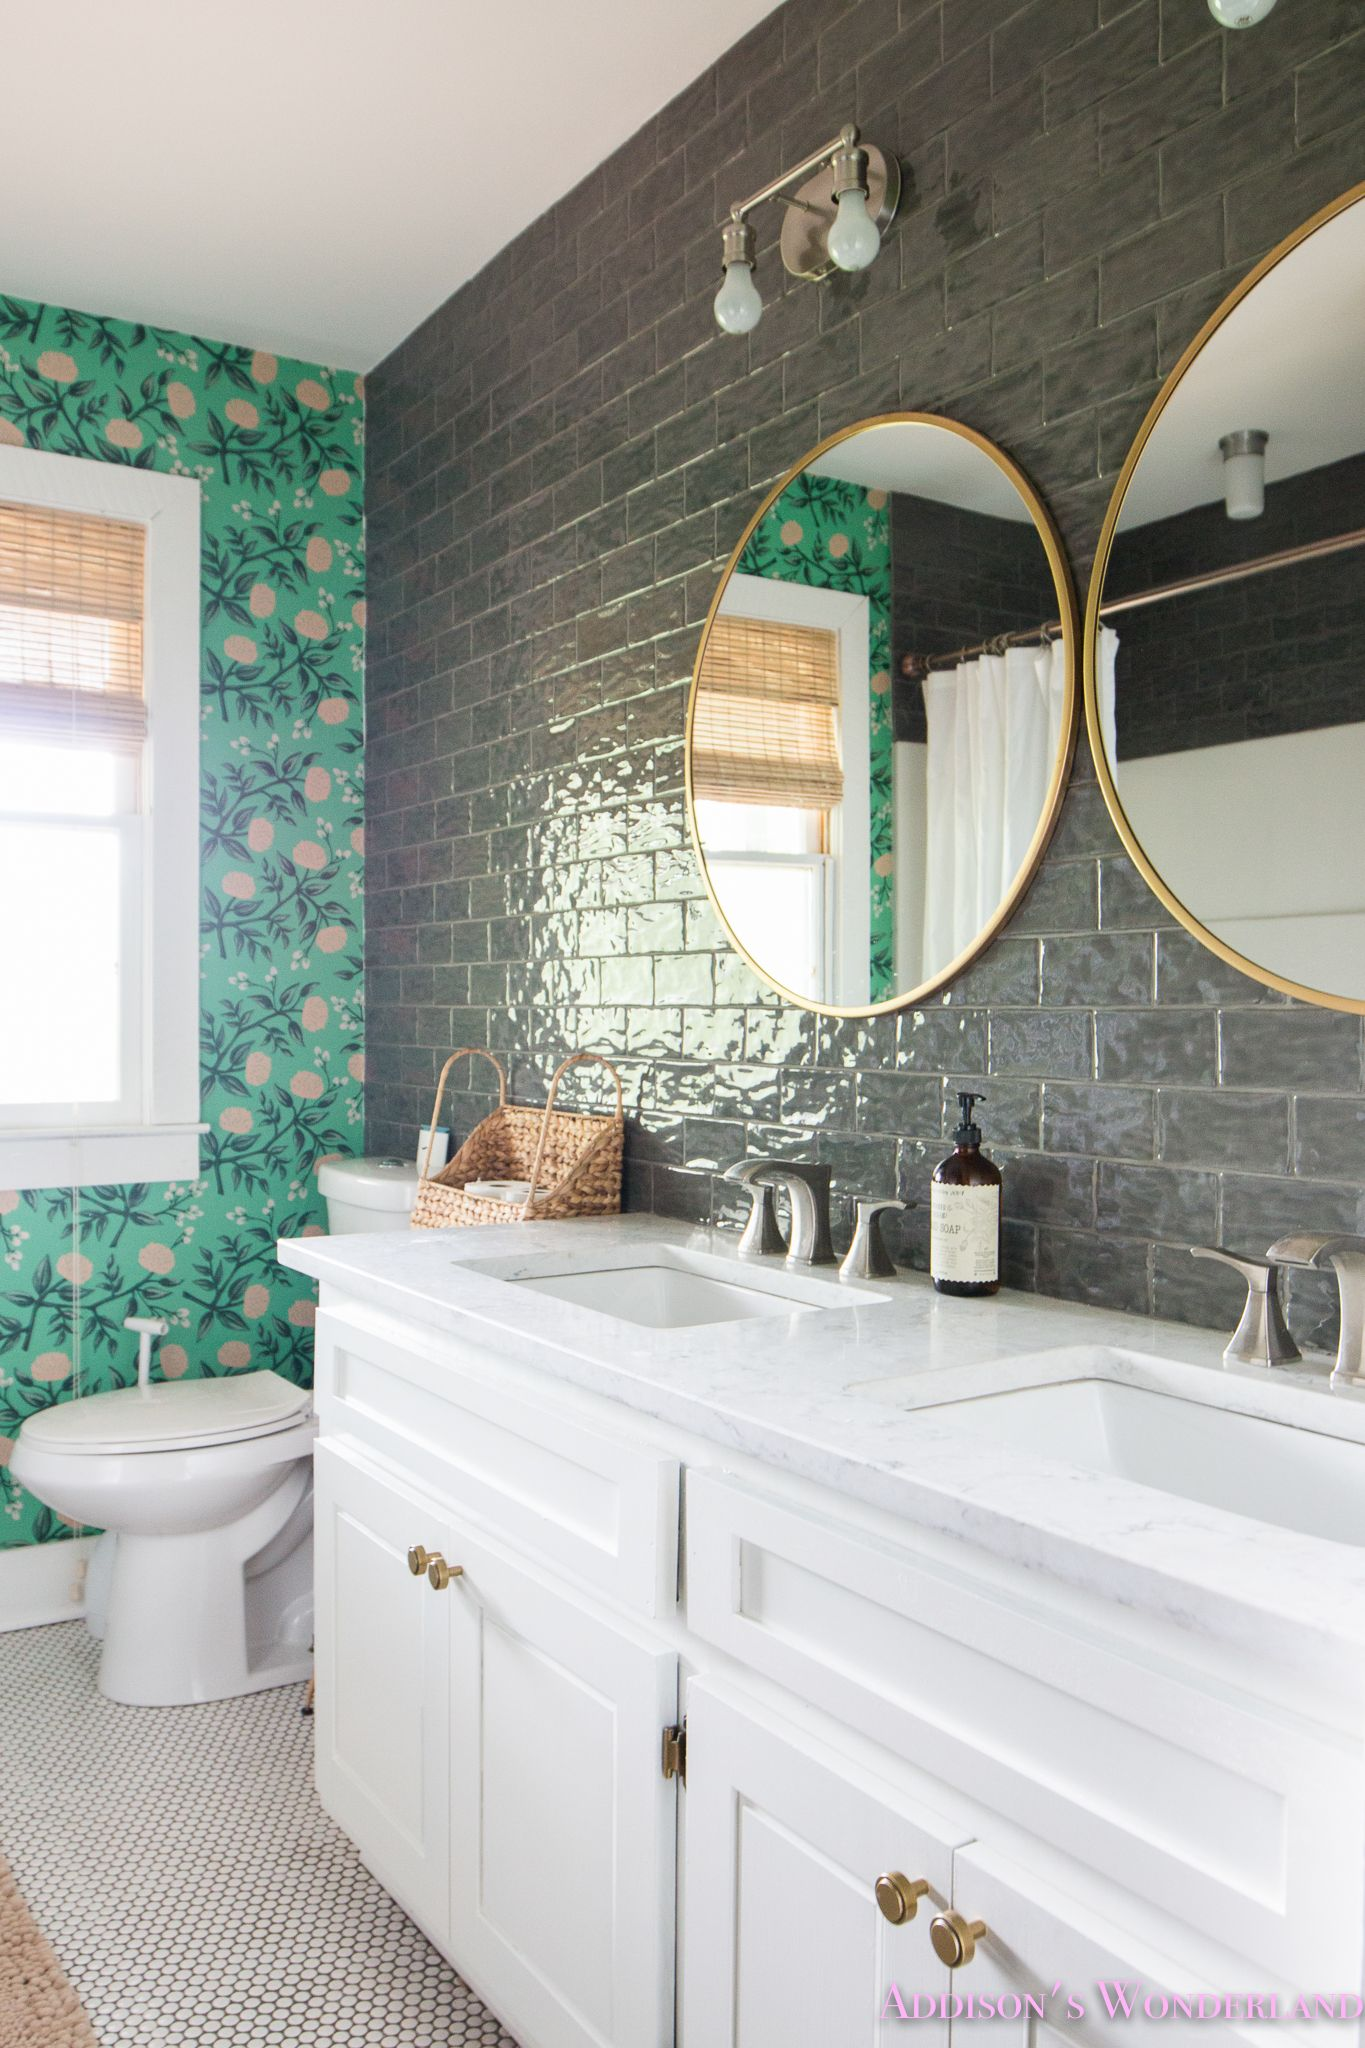 Our green poppies wallpaper cabin guest bathroom reveal bathroom